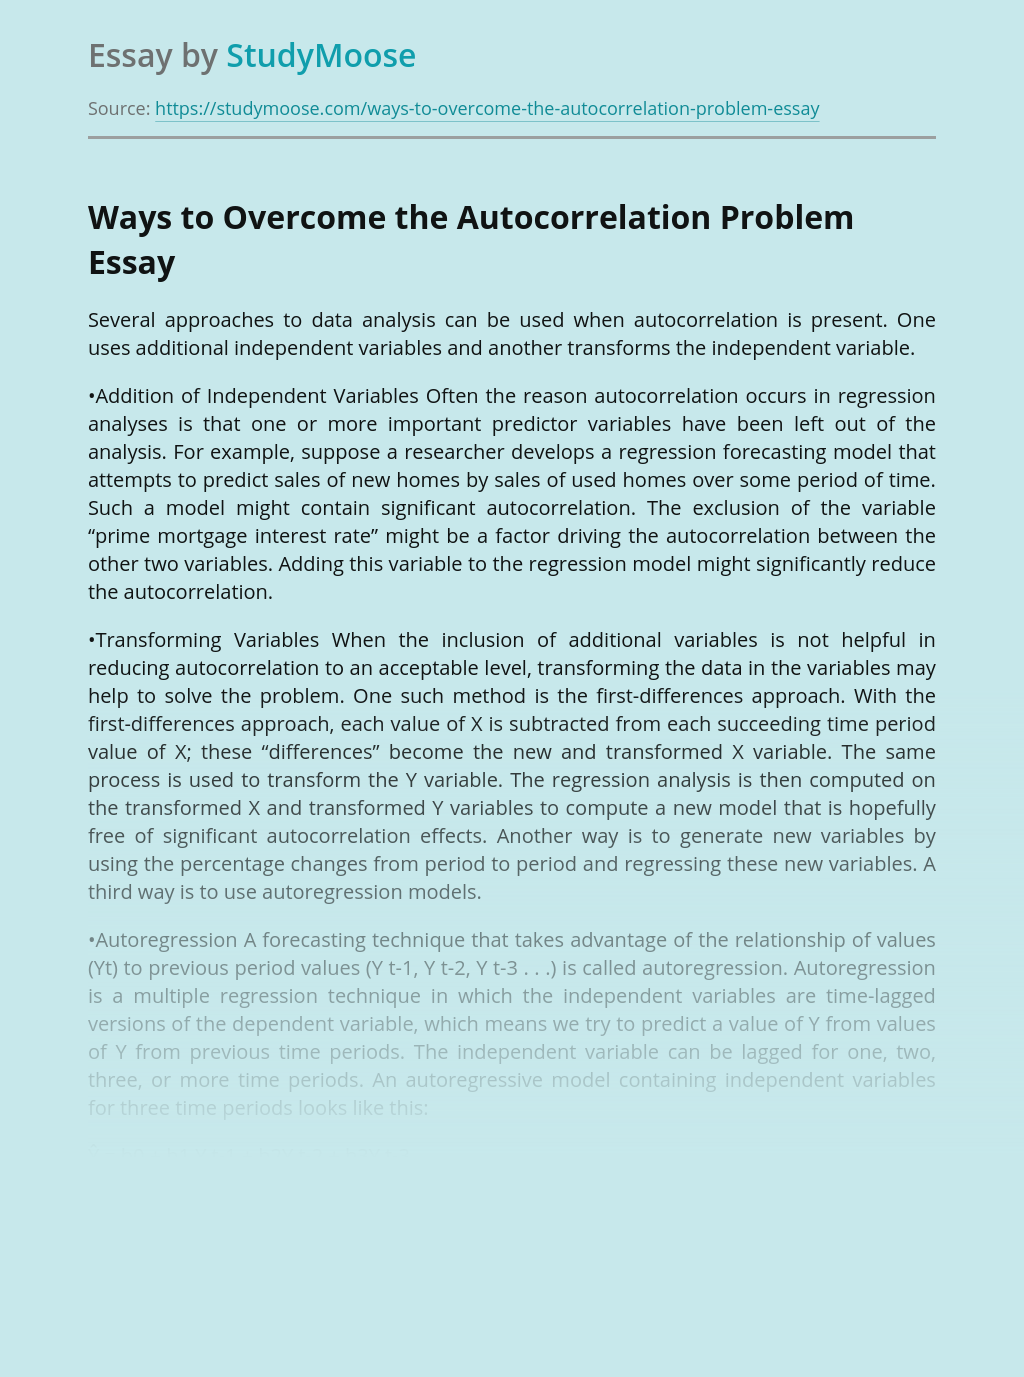 Overcoming the Autocorrelation Problem in Data Analysis